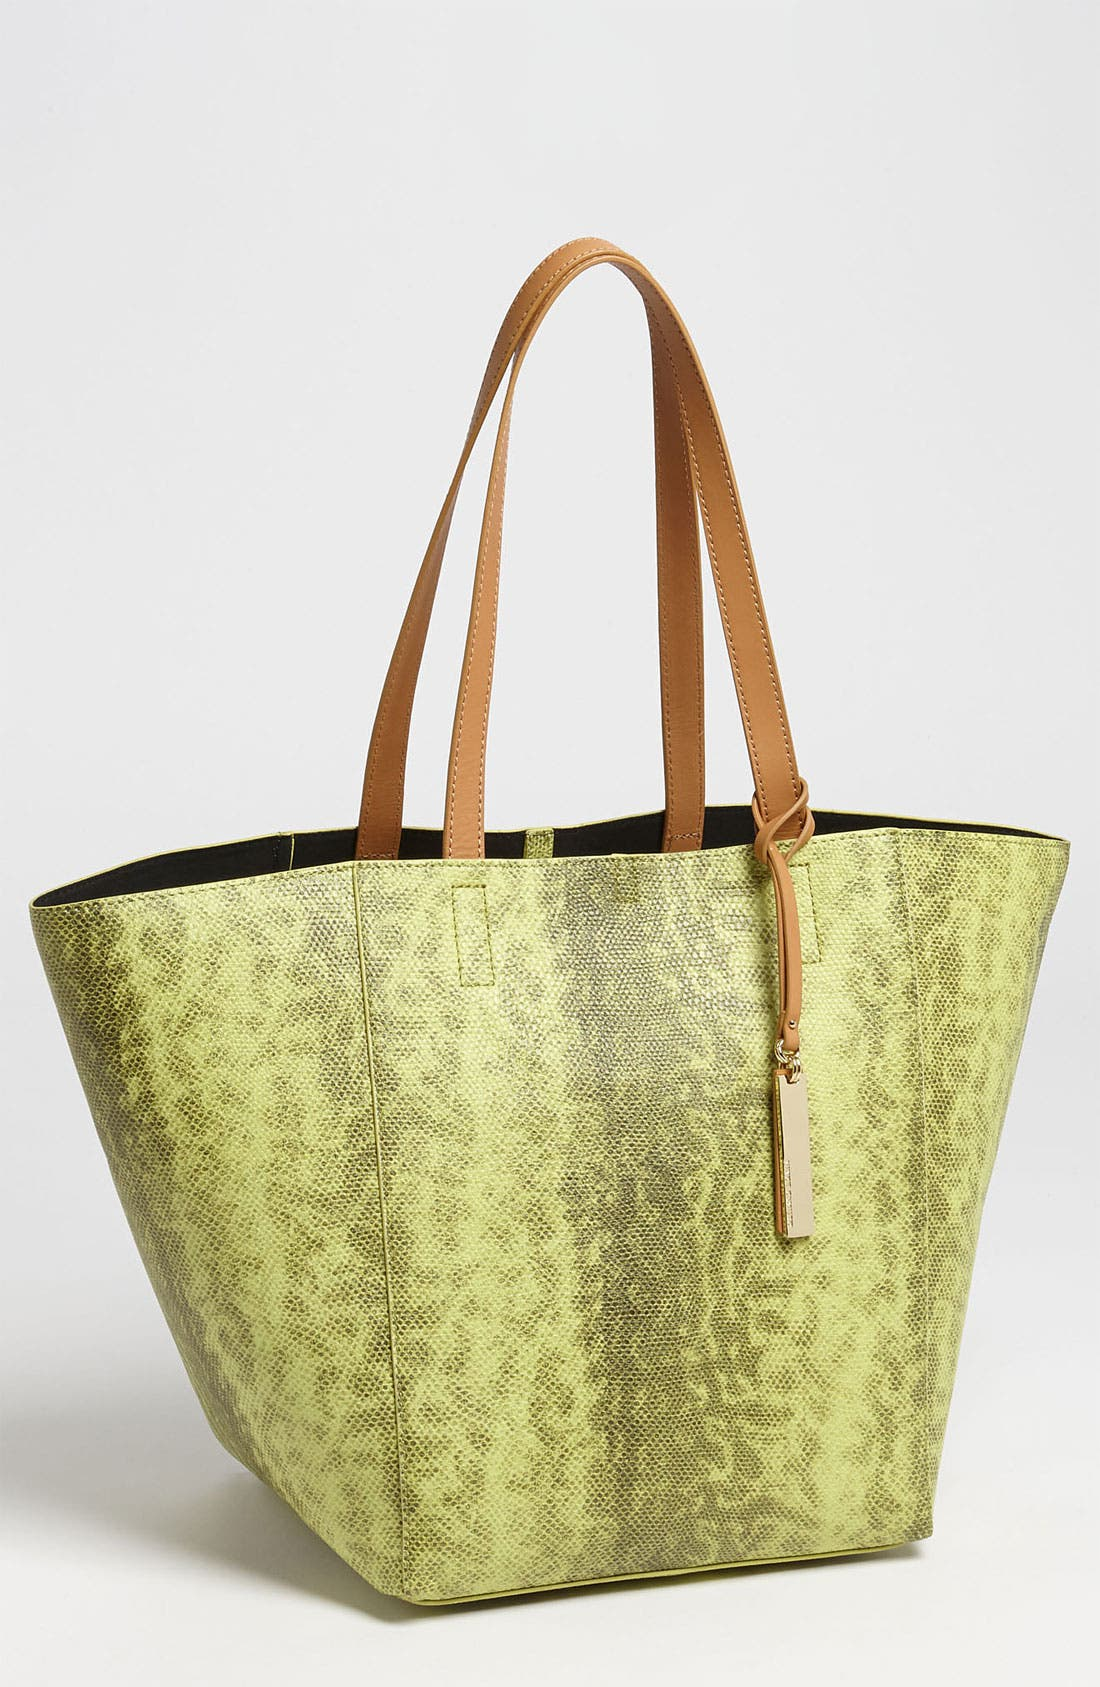 Main Image - Vince Camuto 'Coco' Embossed Snake Tote